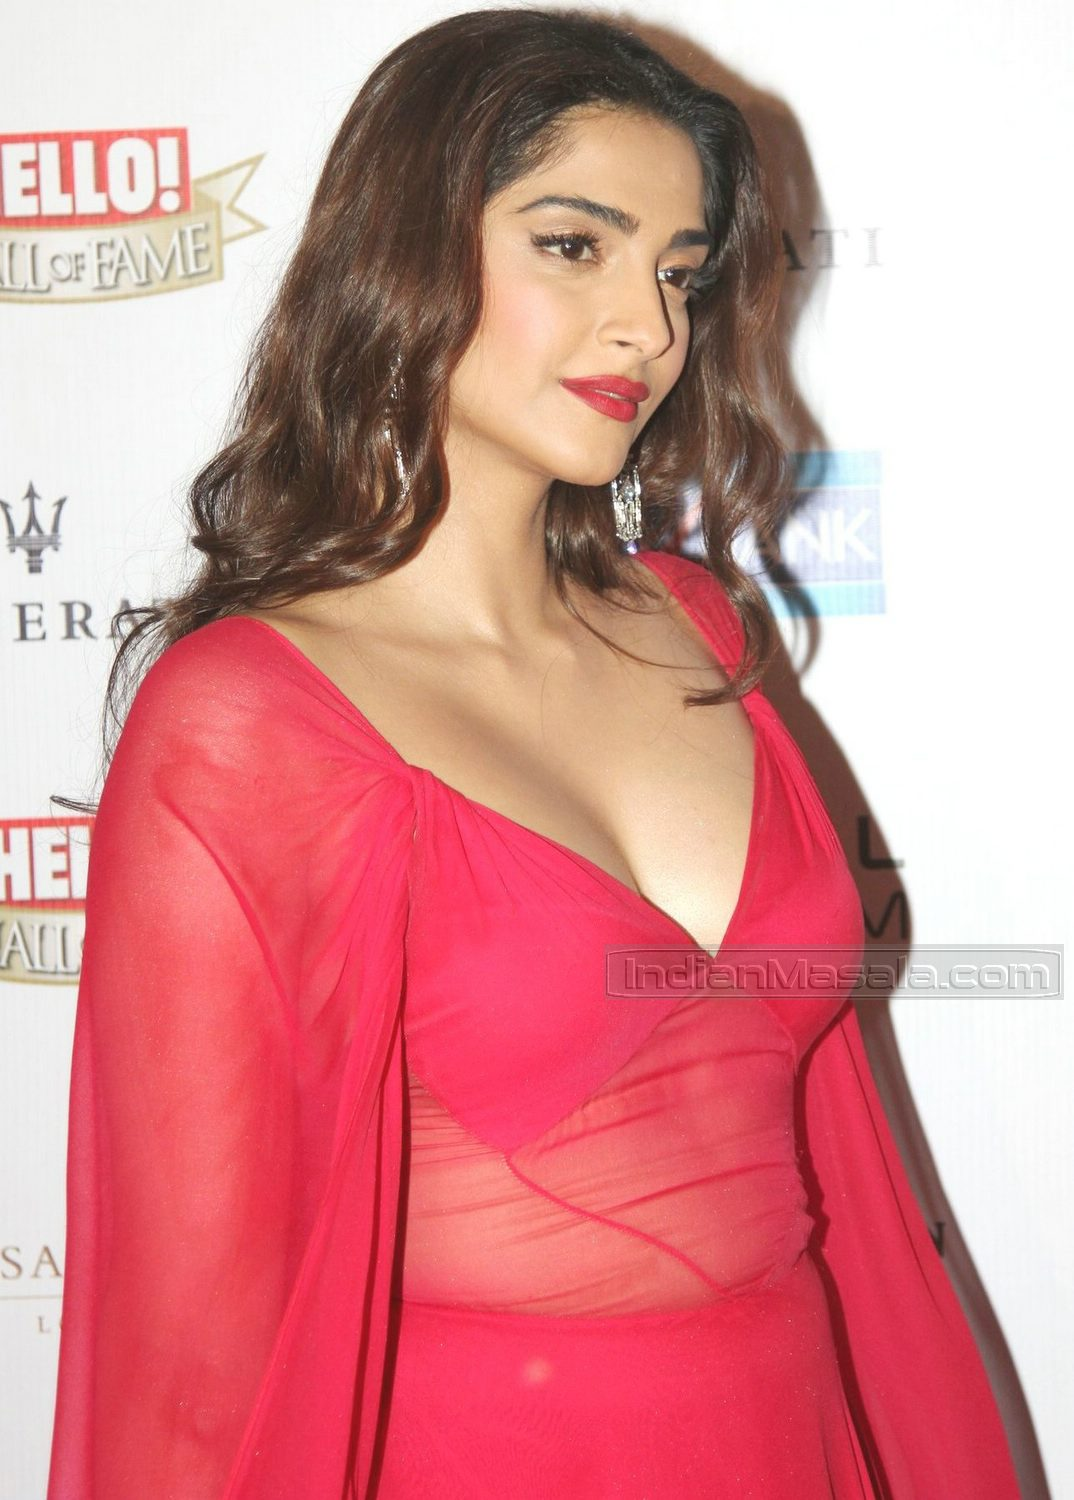 Sonam Kapoor in a red gown with deep neck pluning neckline at Hello Hall of Fame Awards 2016